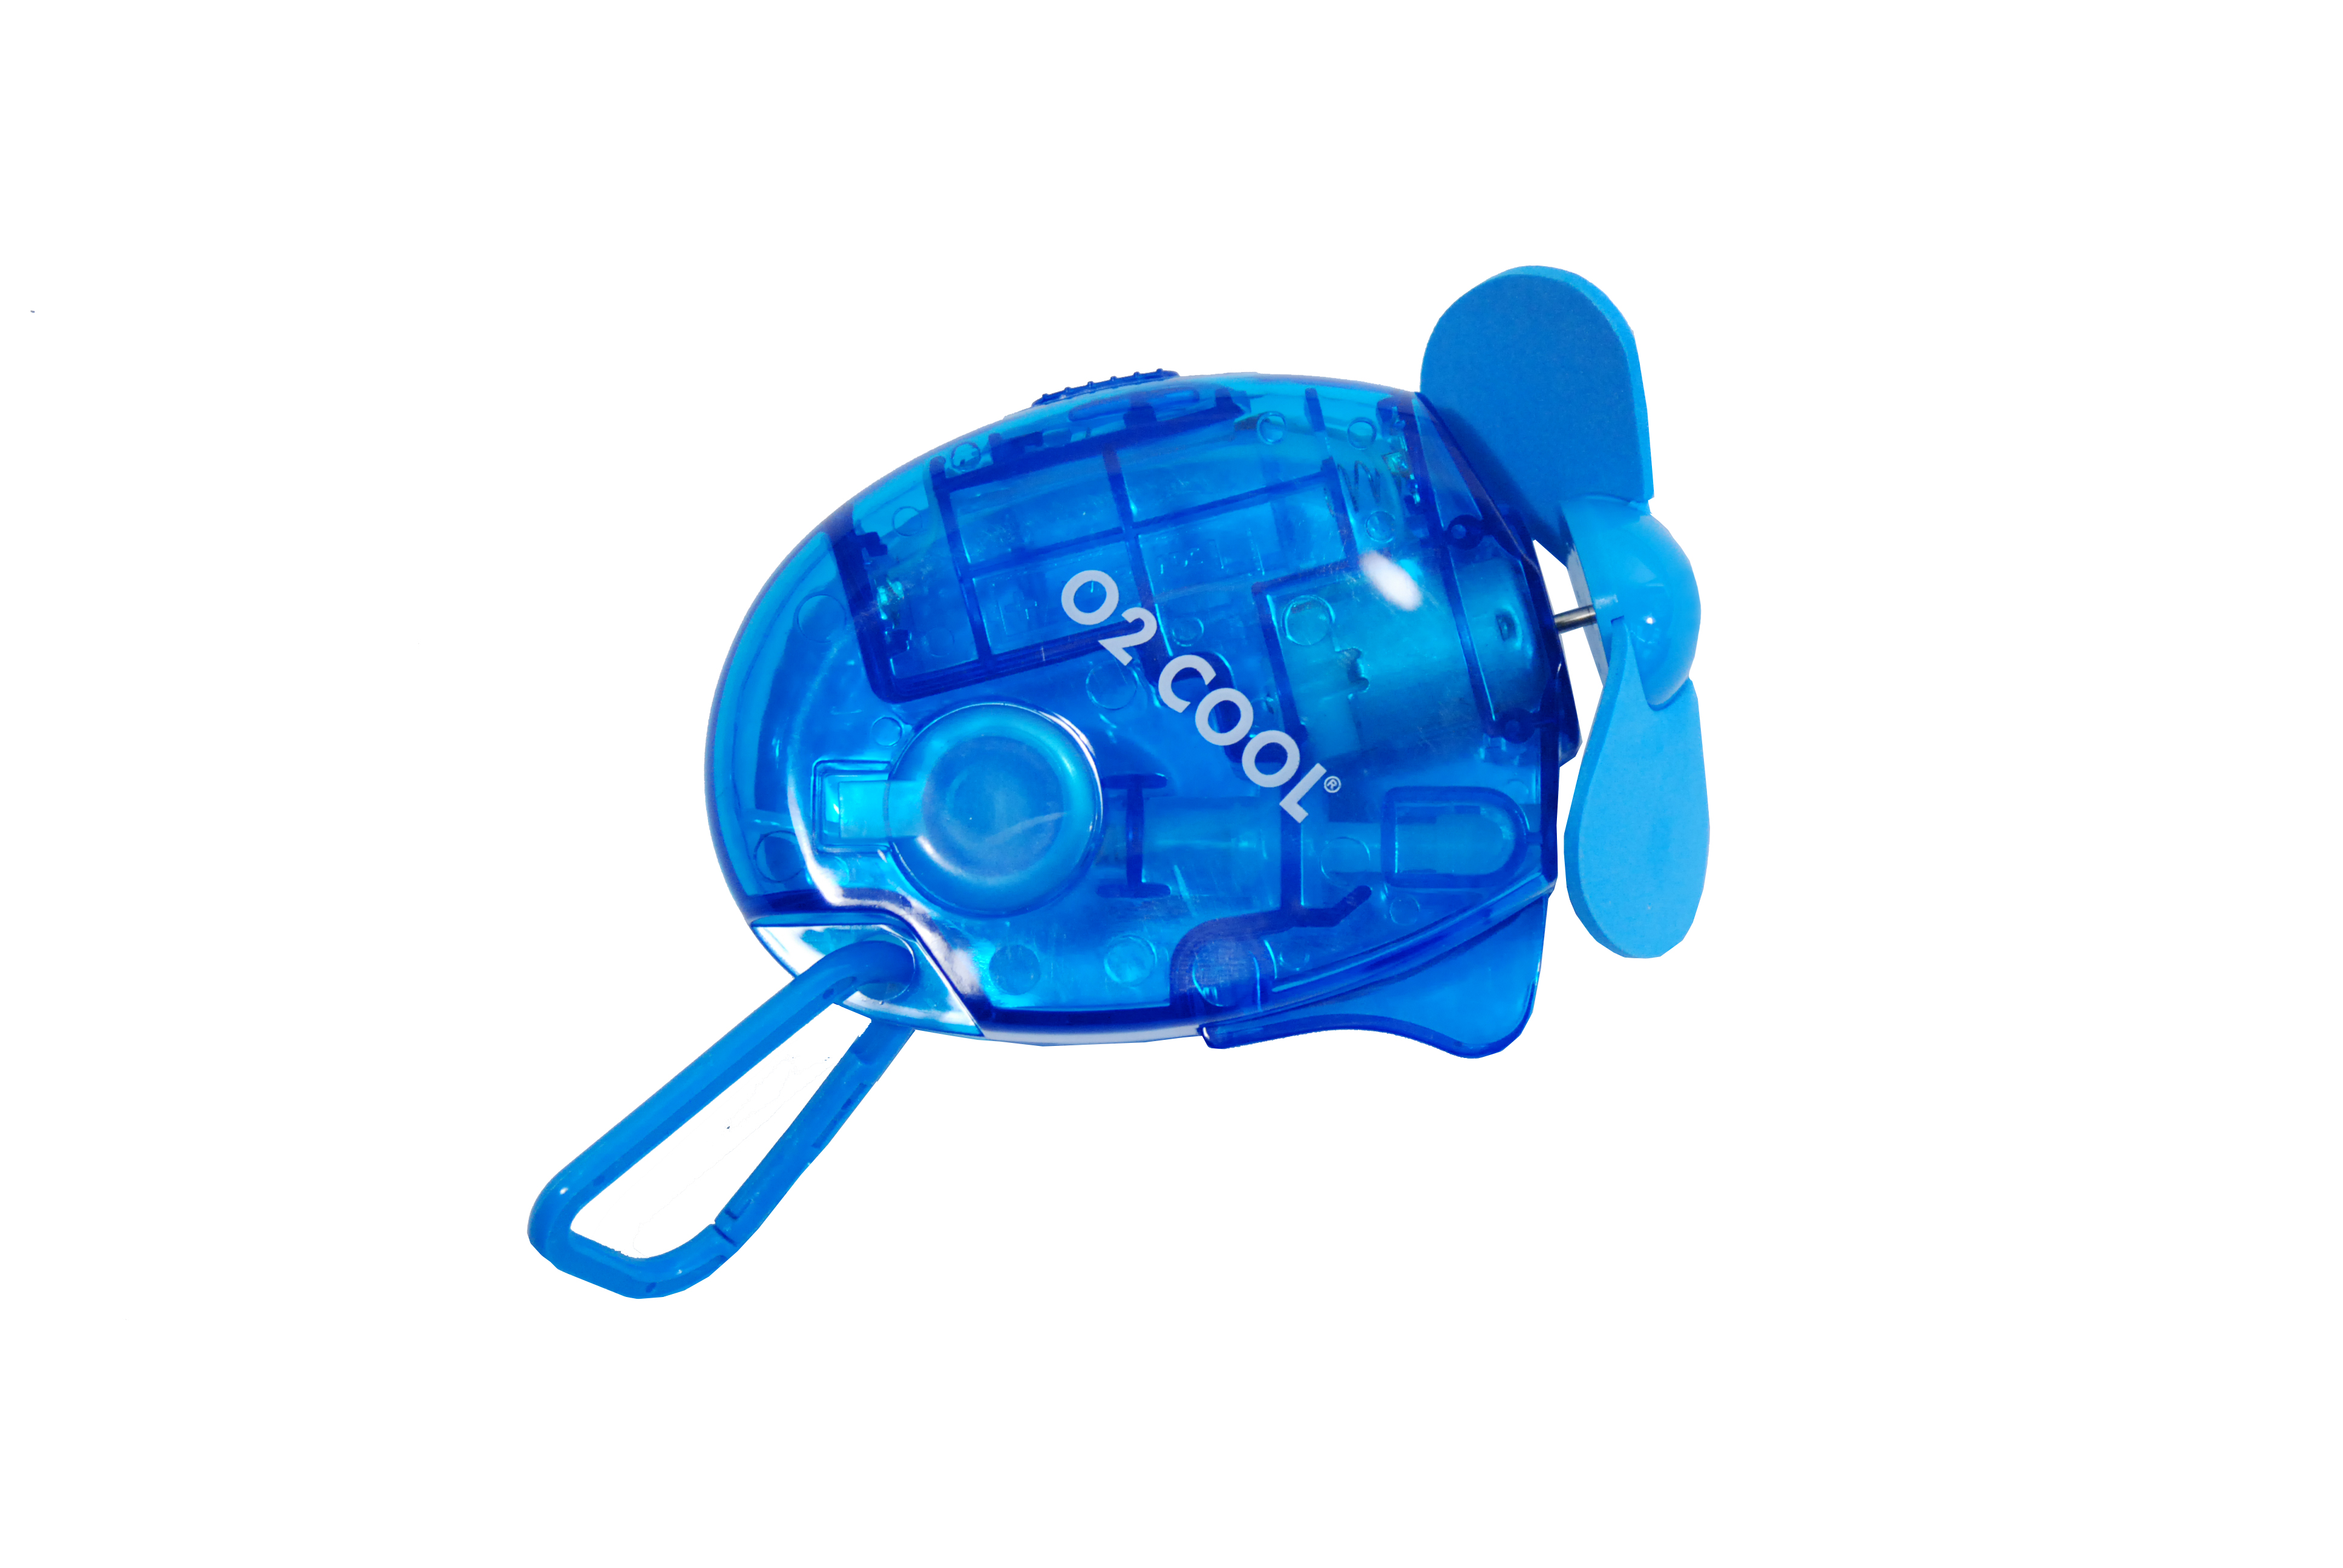 O2 Cool Water Misting Fan